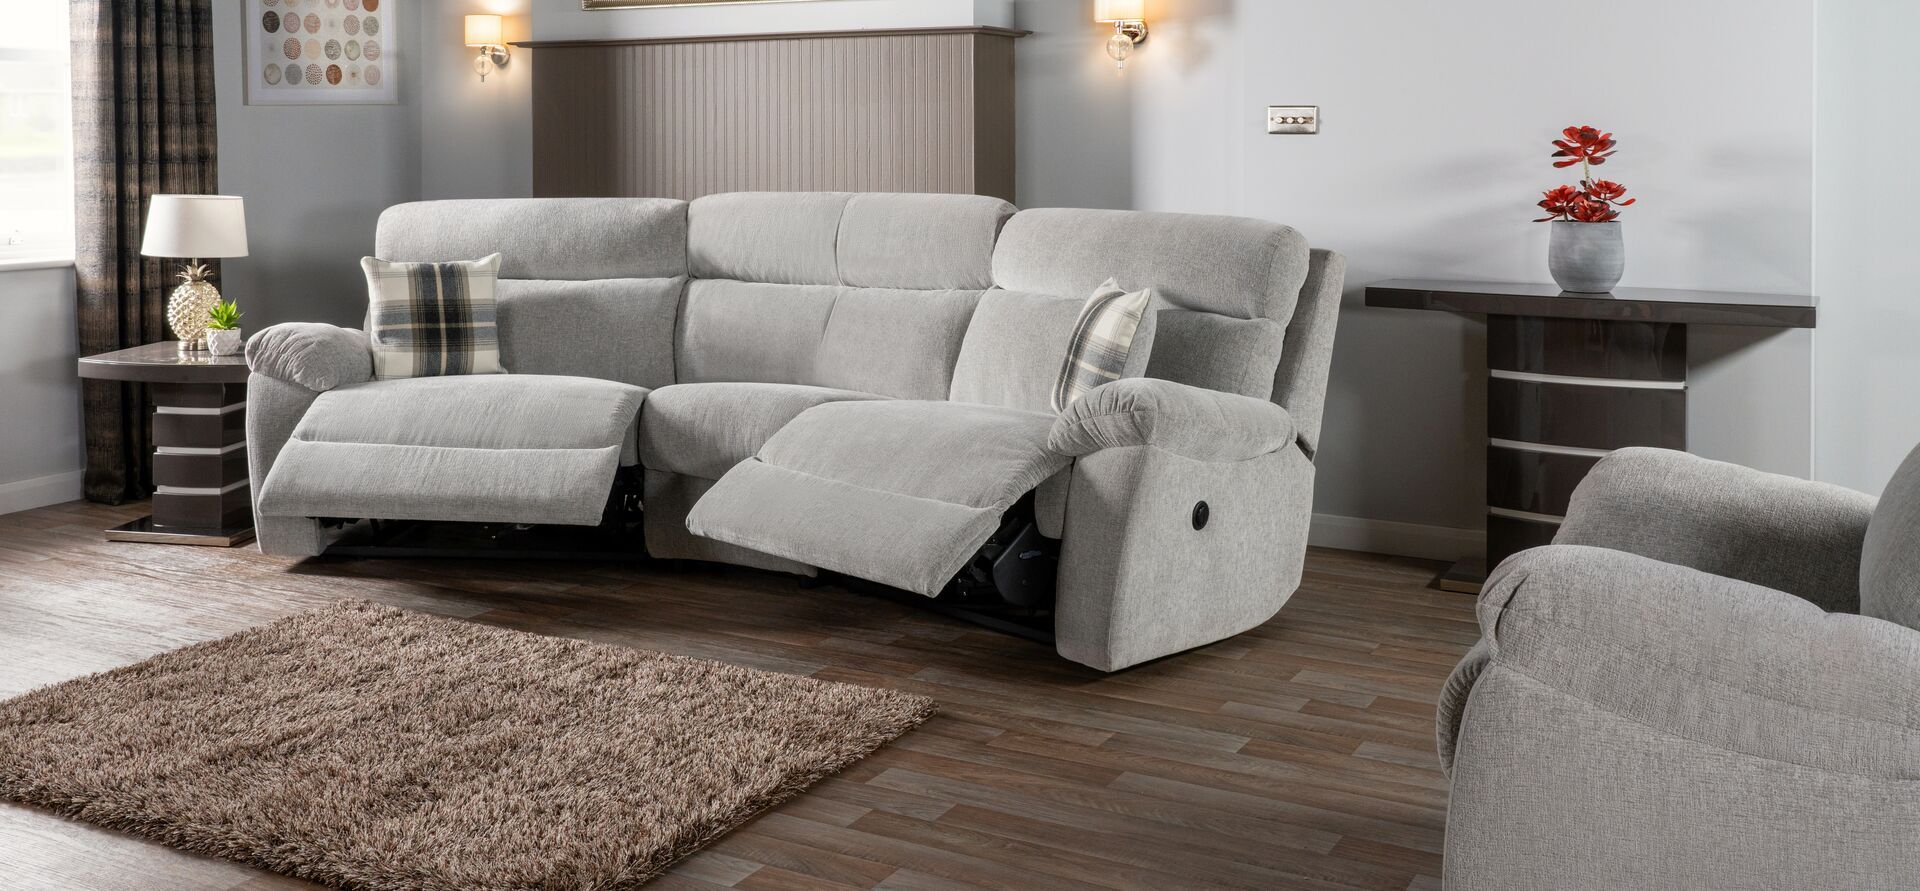 Cloud 4 Seater Curved Power Recliner Sofa In 2020 Beige Living